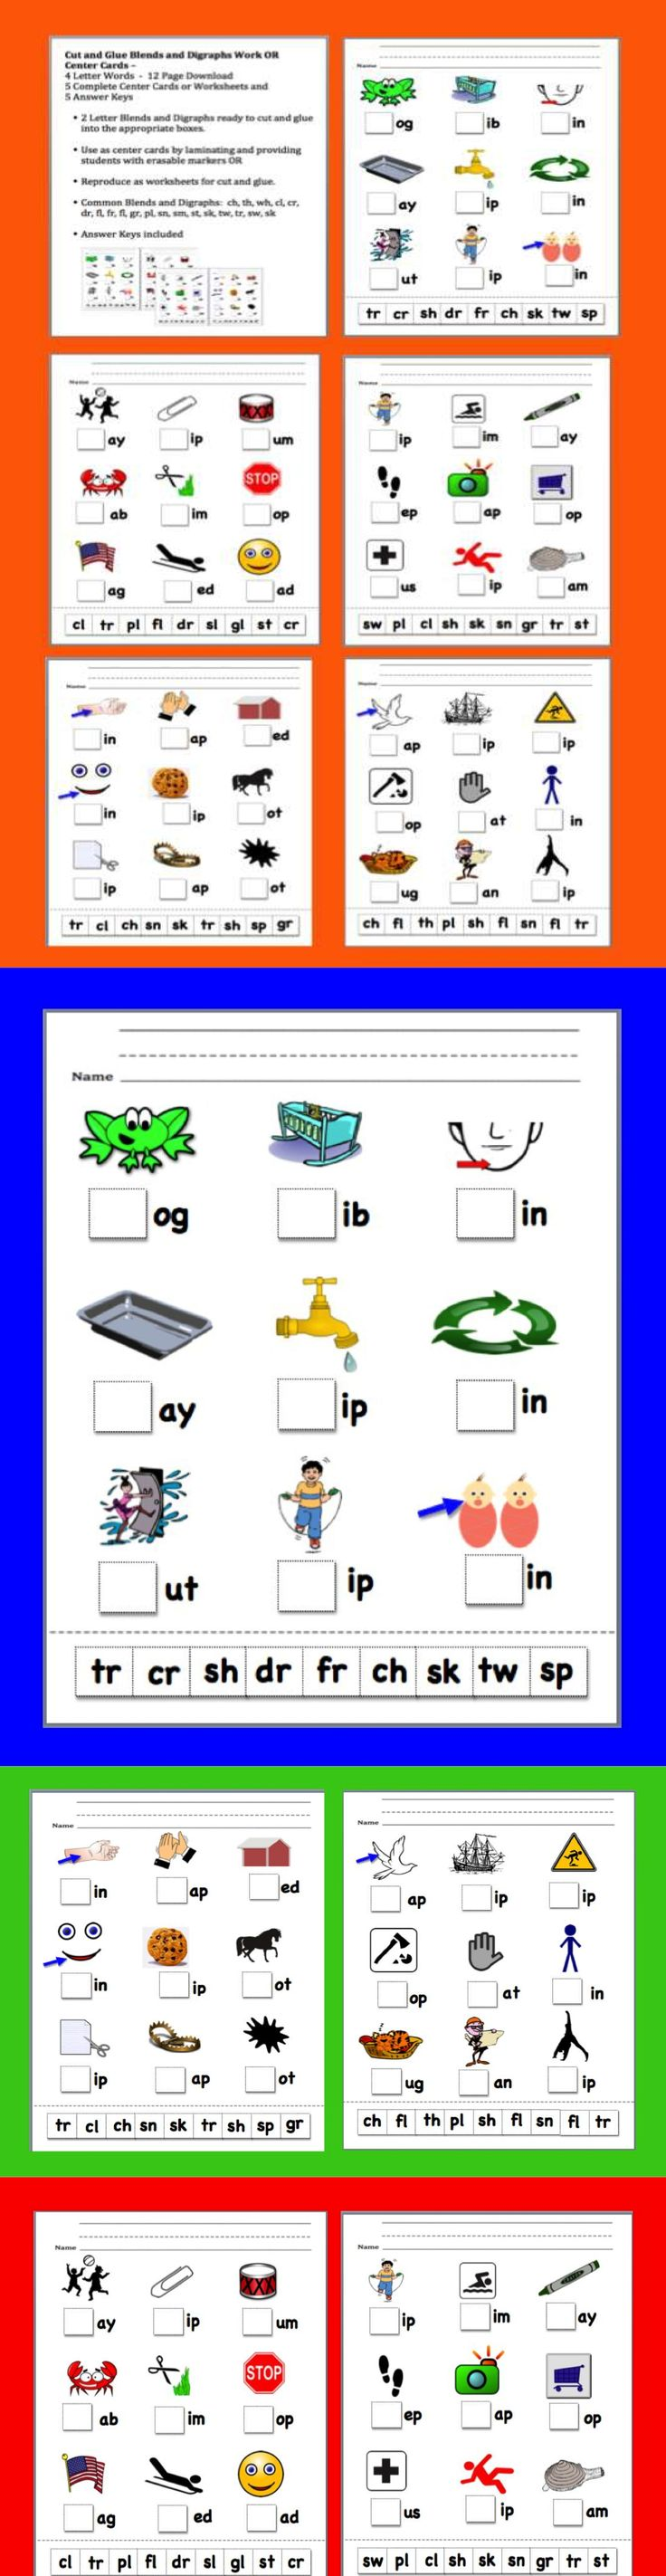 $ Blends and Digraphs Cut and Glue Blend and Digraph Work OR Center Cards –  4 Letter Words  -  12 Page Download - 5 Complete Center Cards or Worksheets and 5 Answer Keys  Review blends and digraphs with your students as they begin their new school year!  Great practice for onset rime as well...